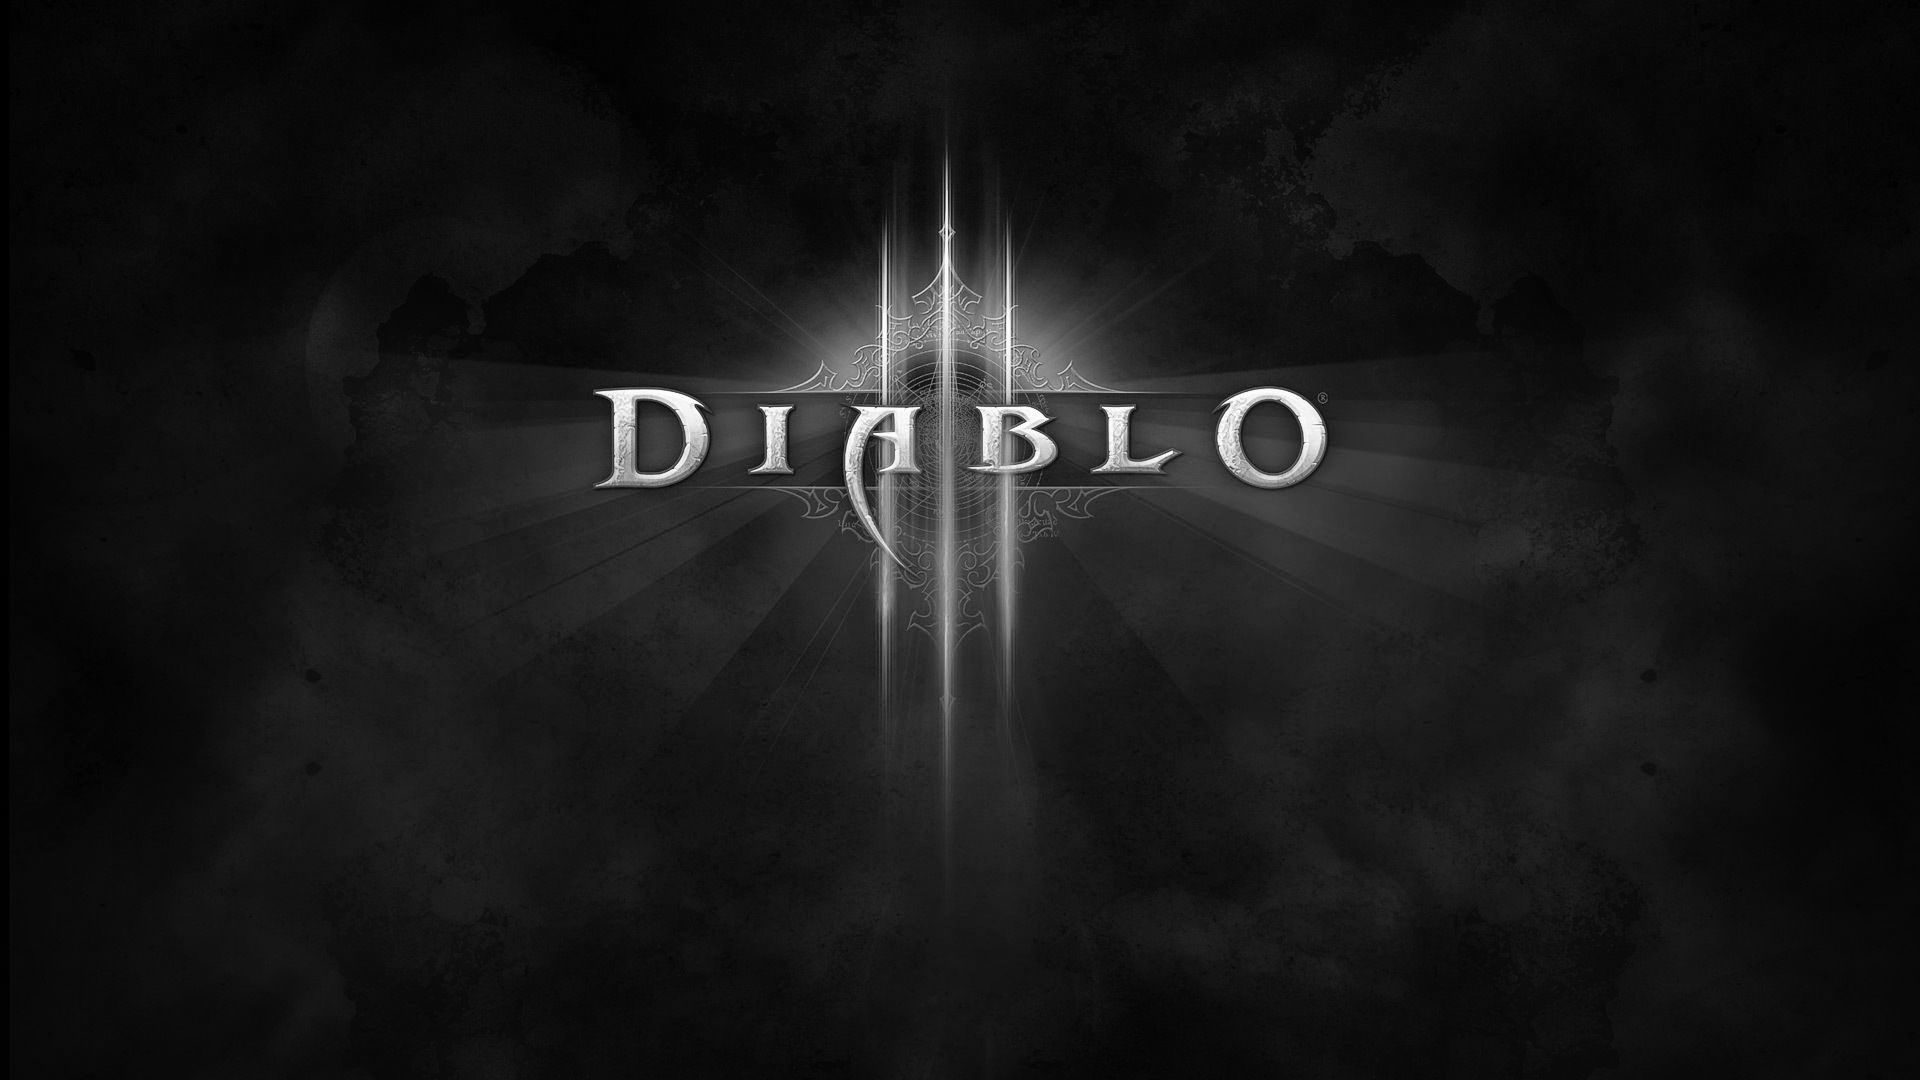 Download Diablo Name Black And White Game Font Wallpaper Kuff